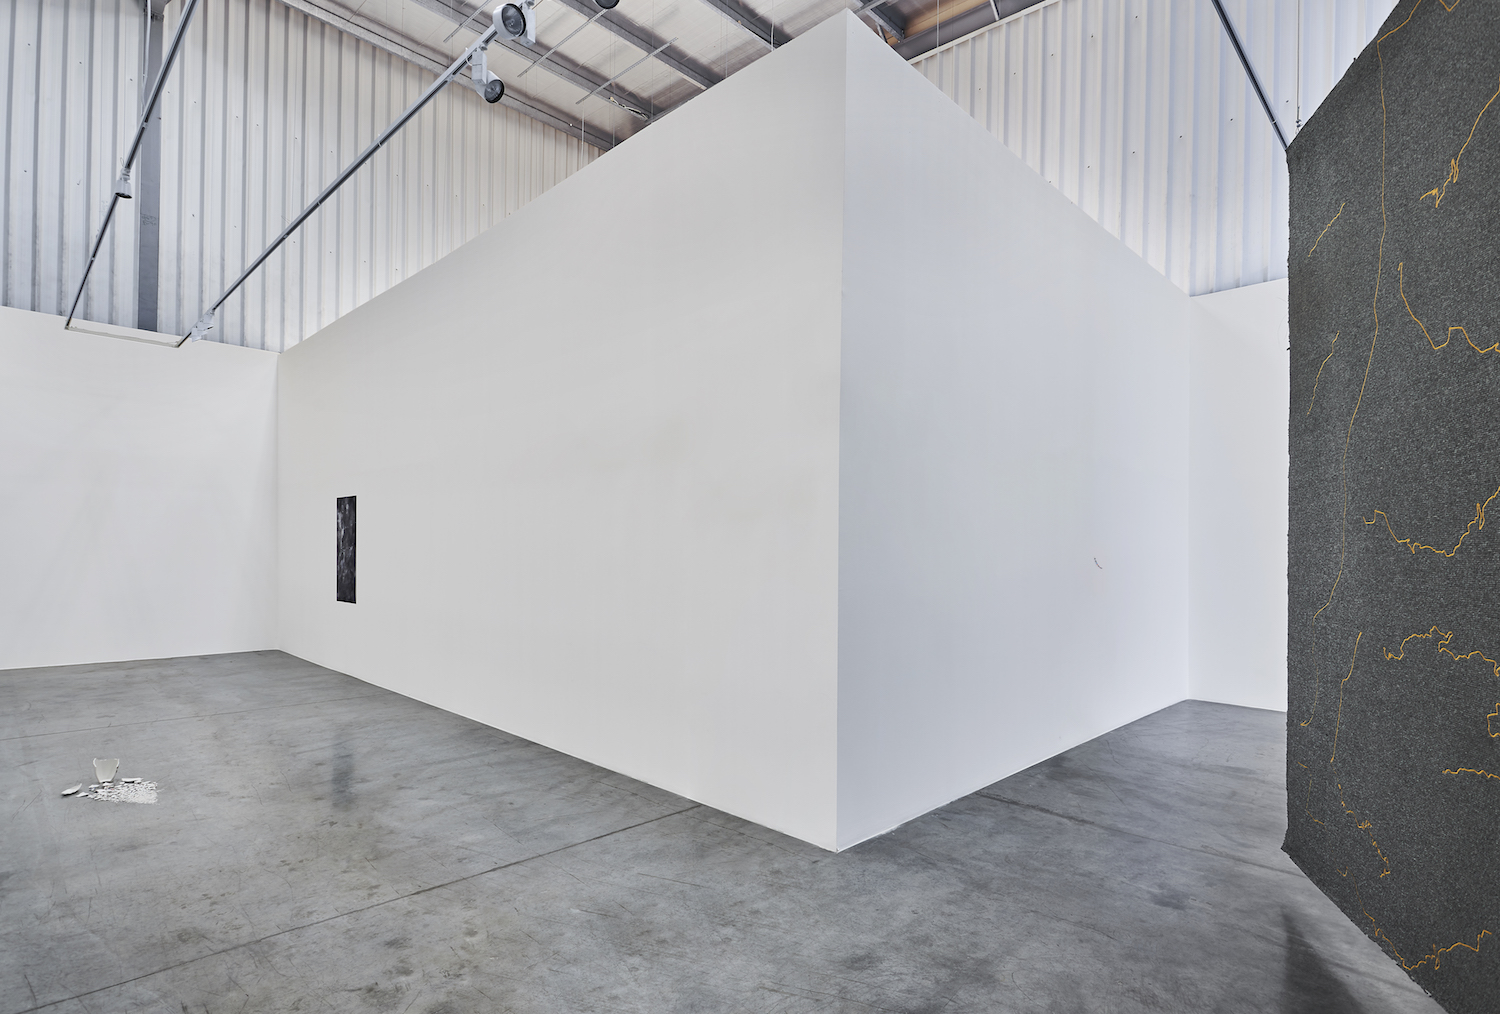 Installation view | The Encounter of the First and Last Particles of Dust